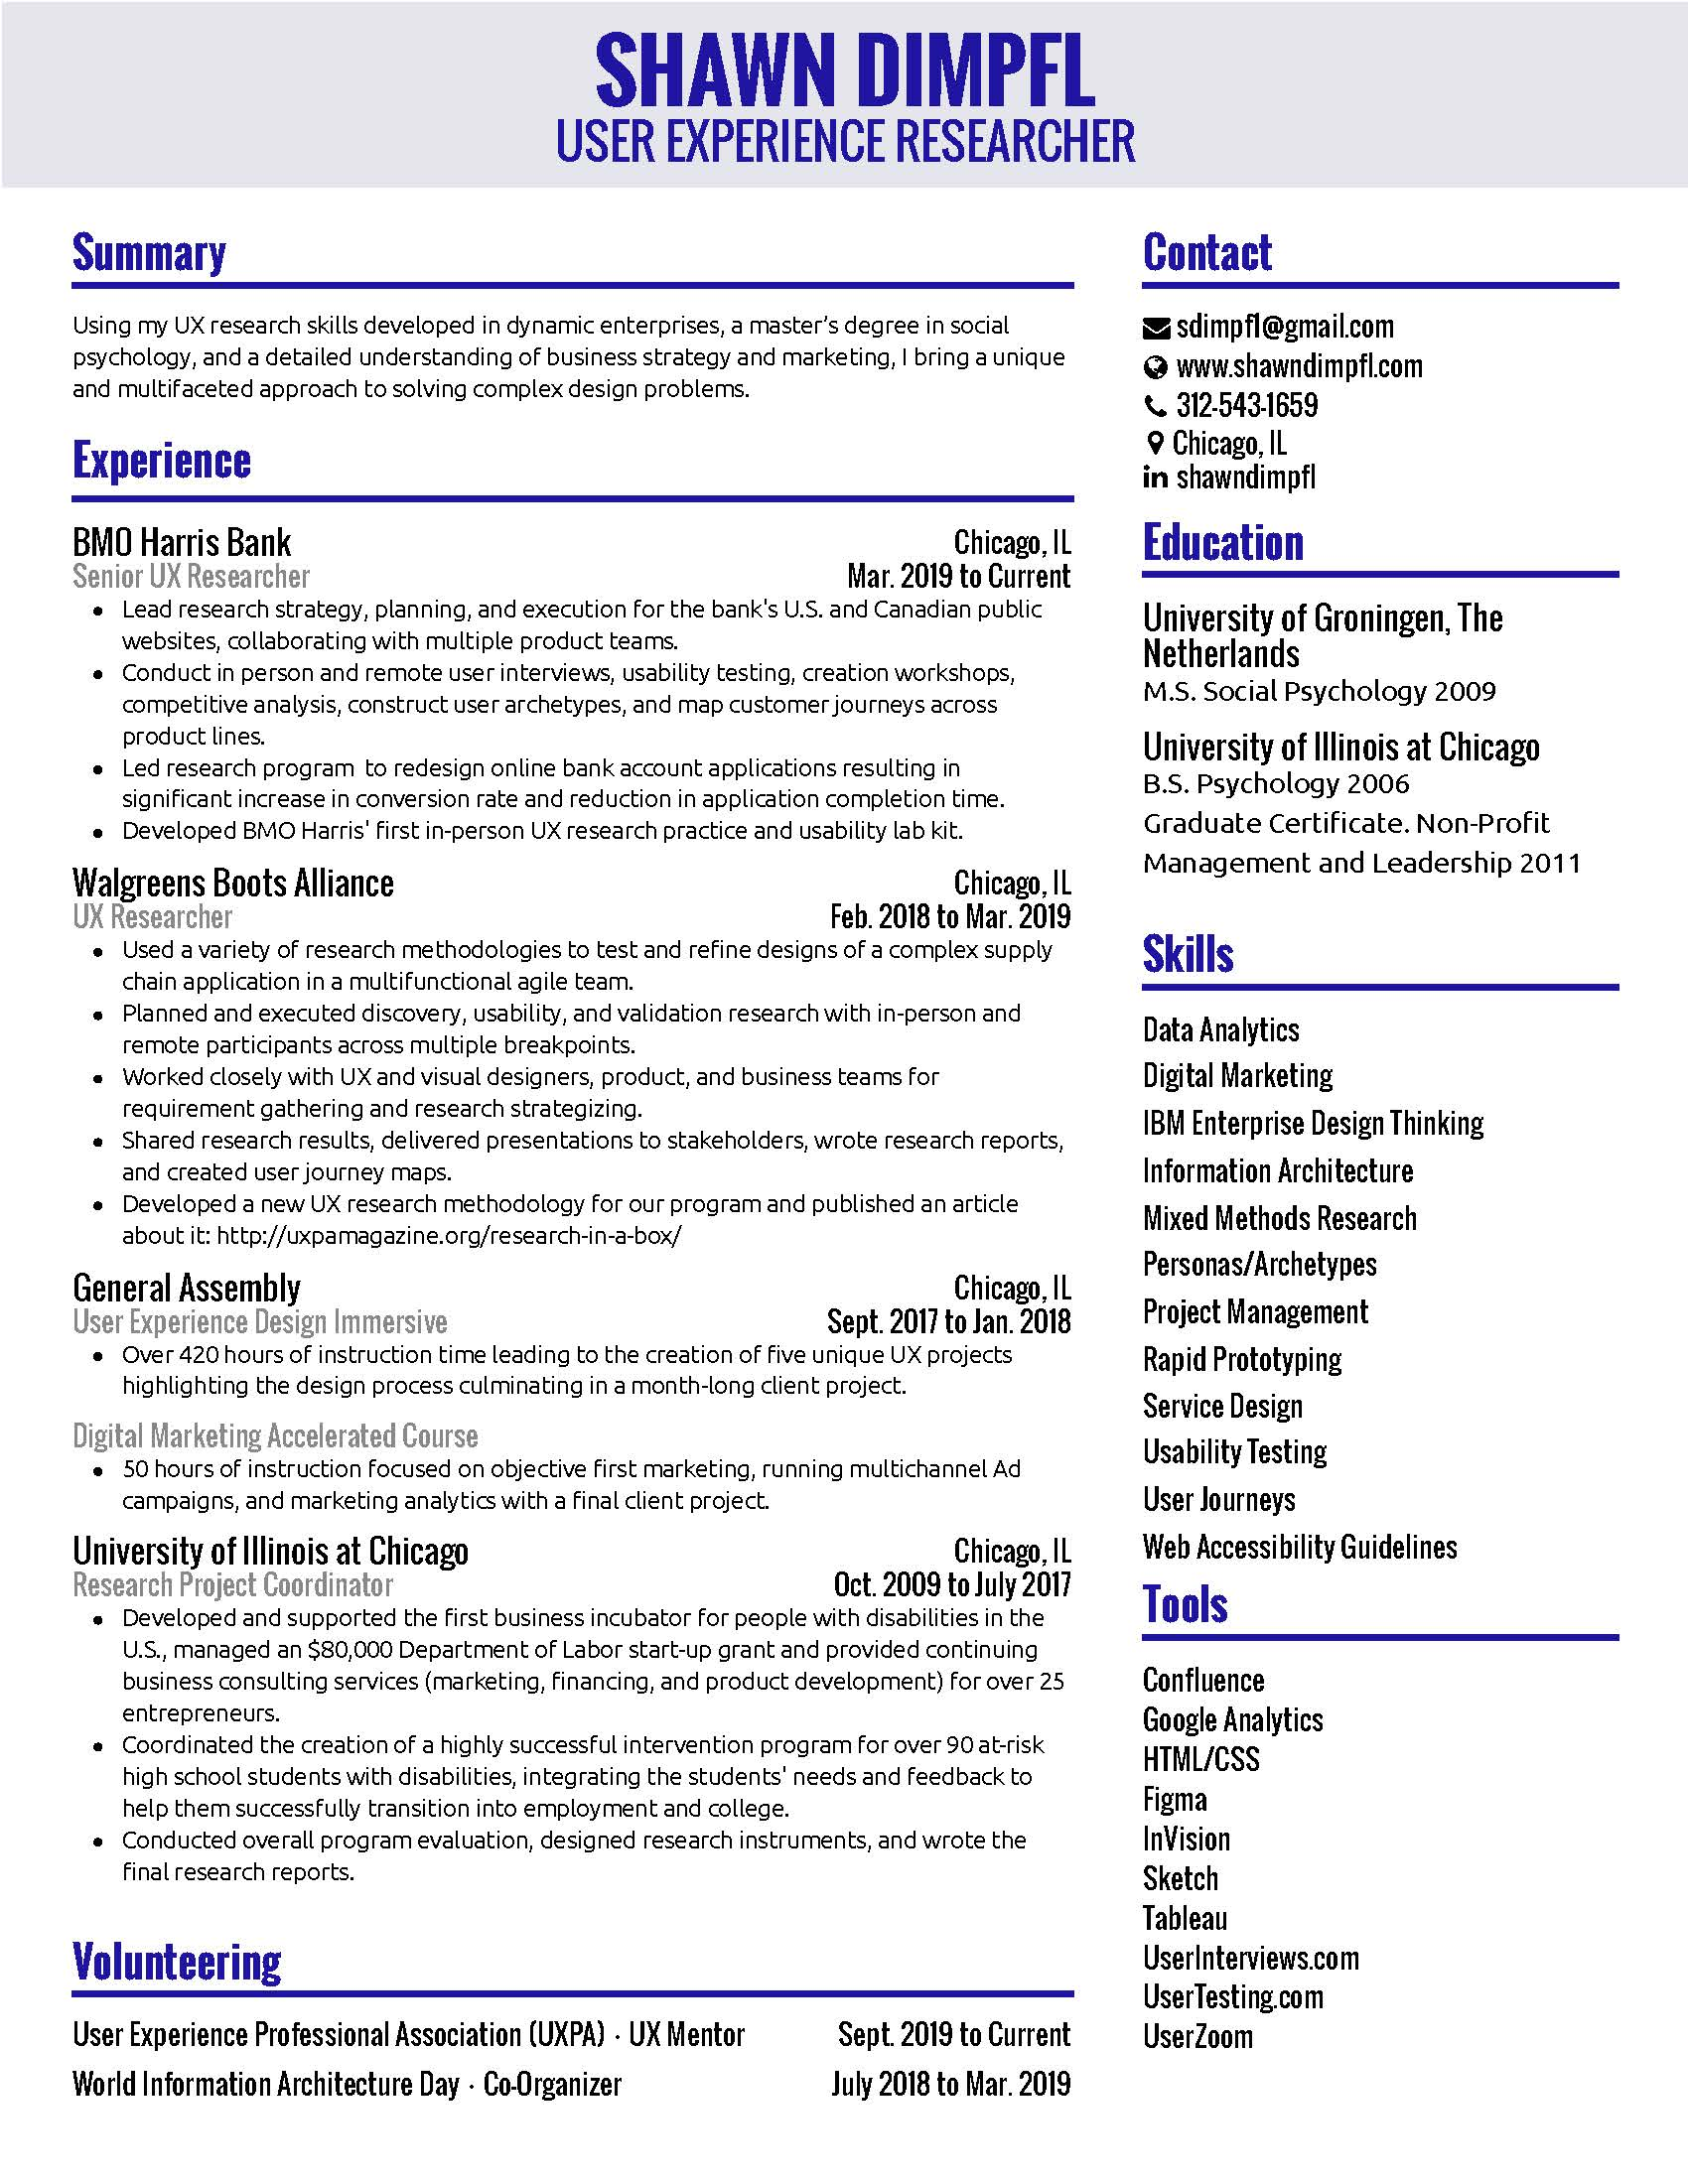 Shawn Dimpfl Resume 8-25-20